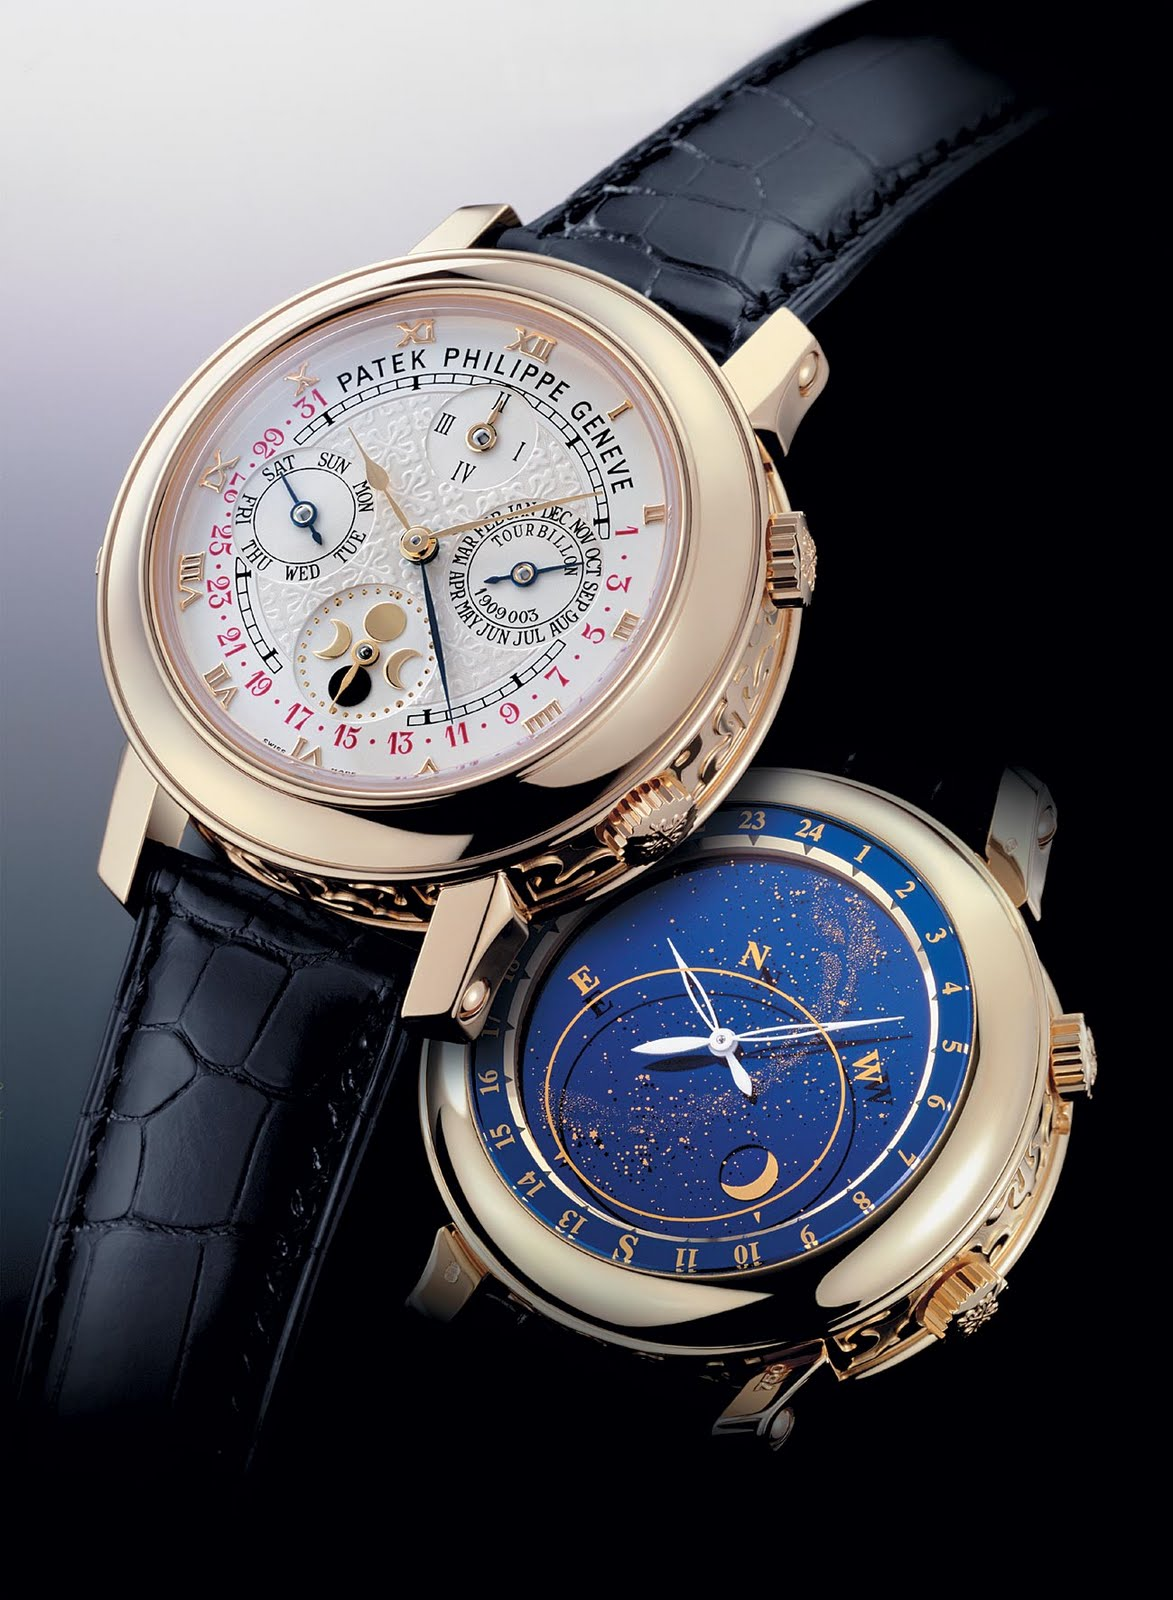 patek philippe sky moon tourbillon ref 5002 most expensive watch in the world